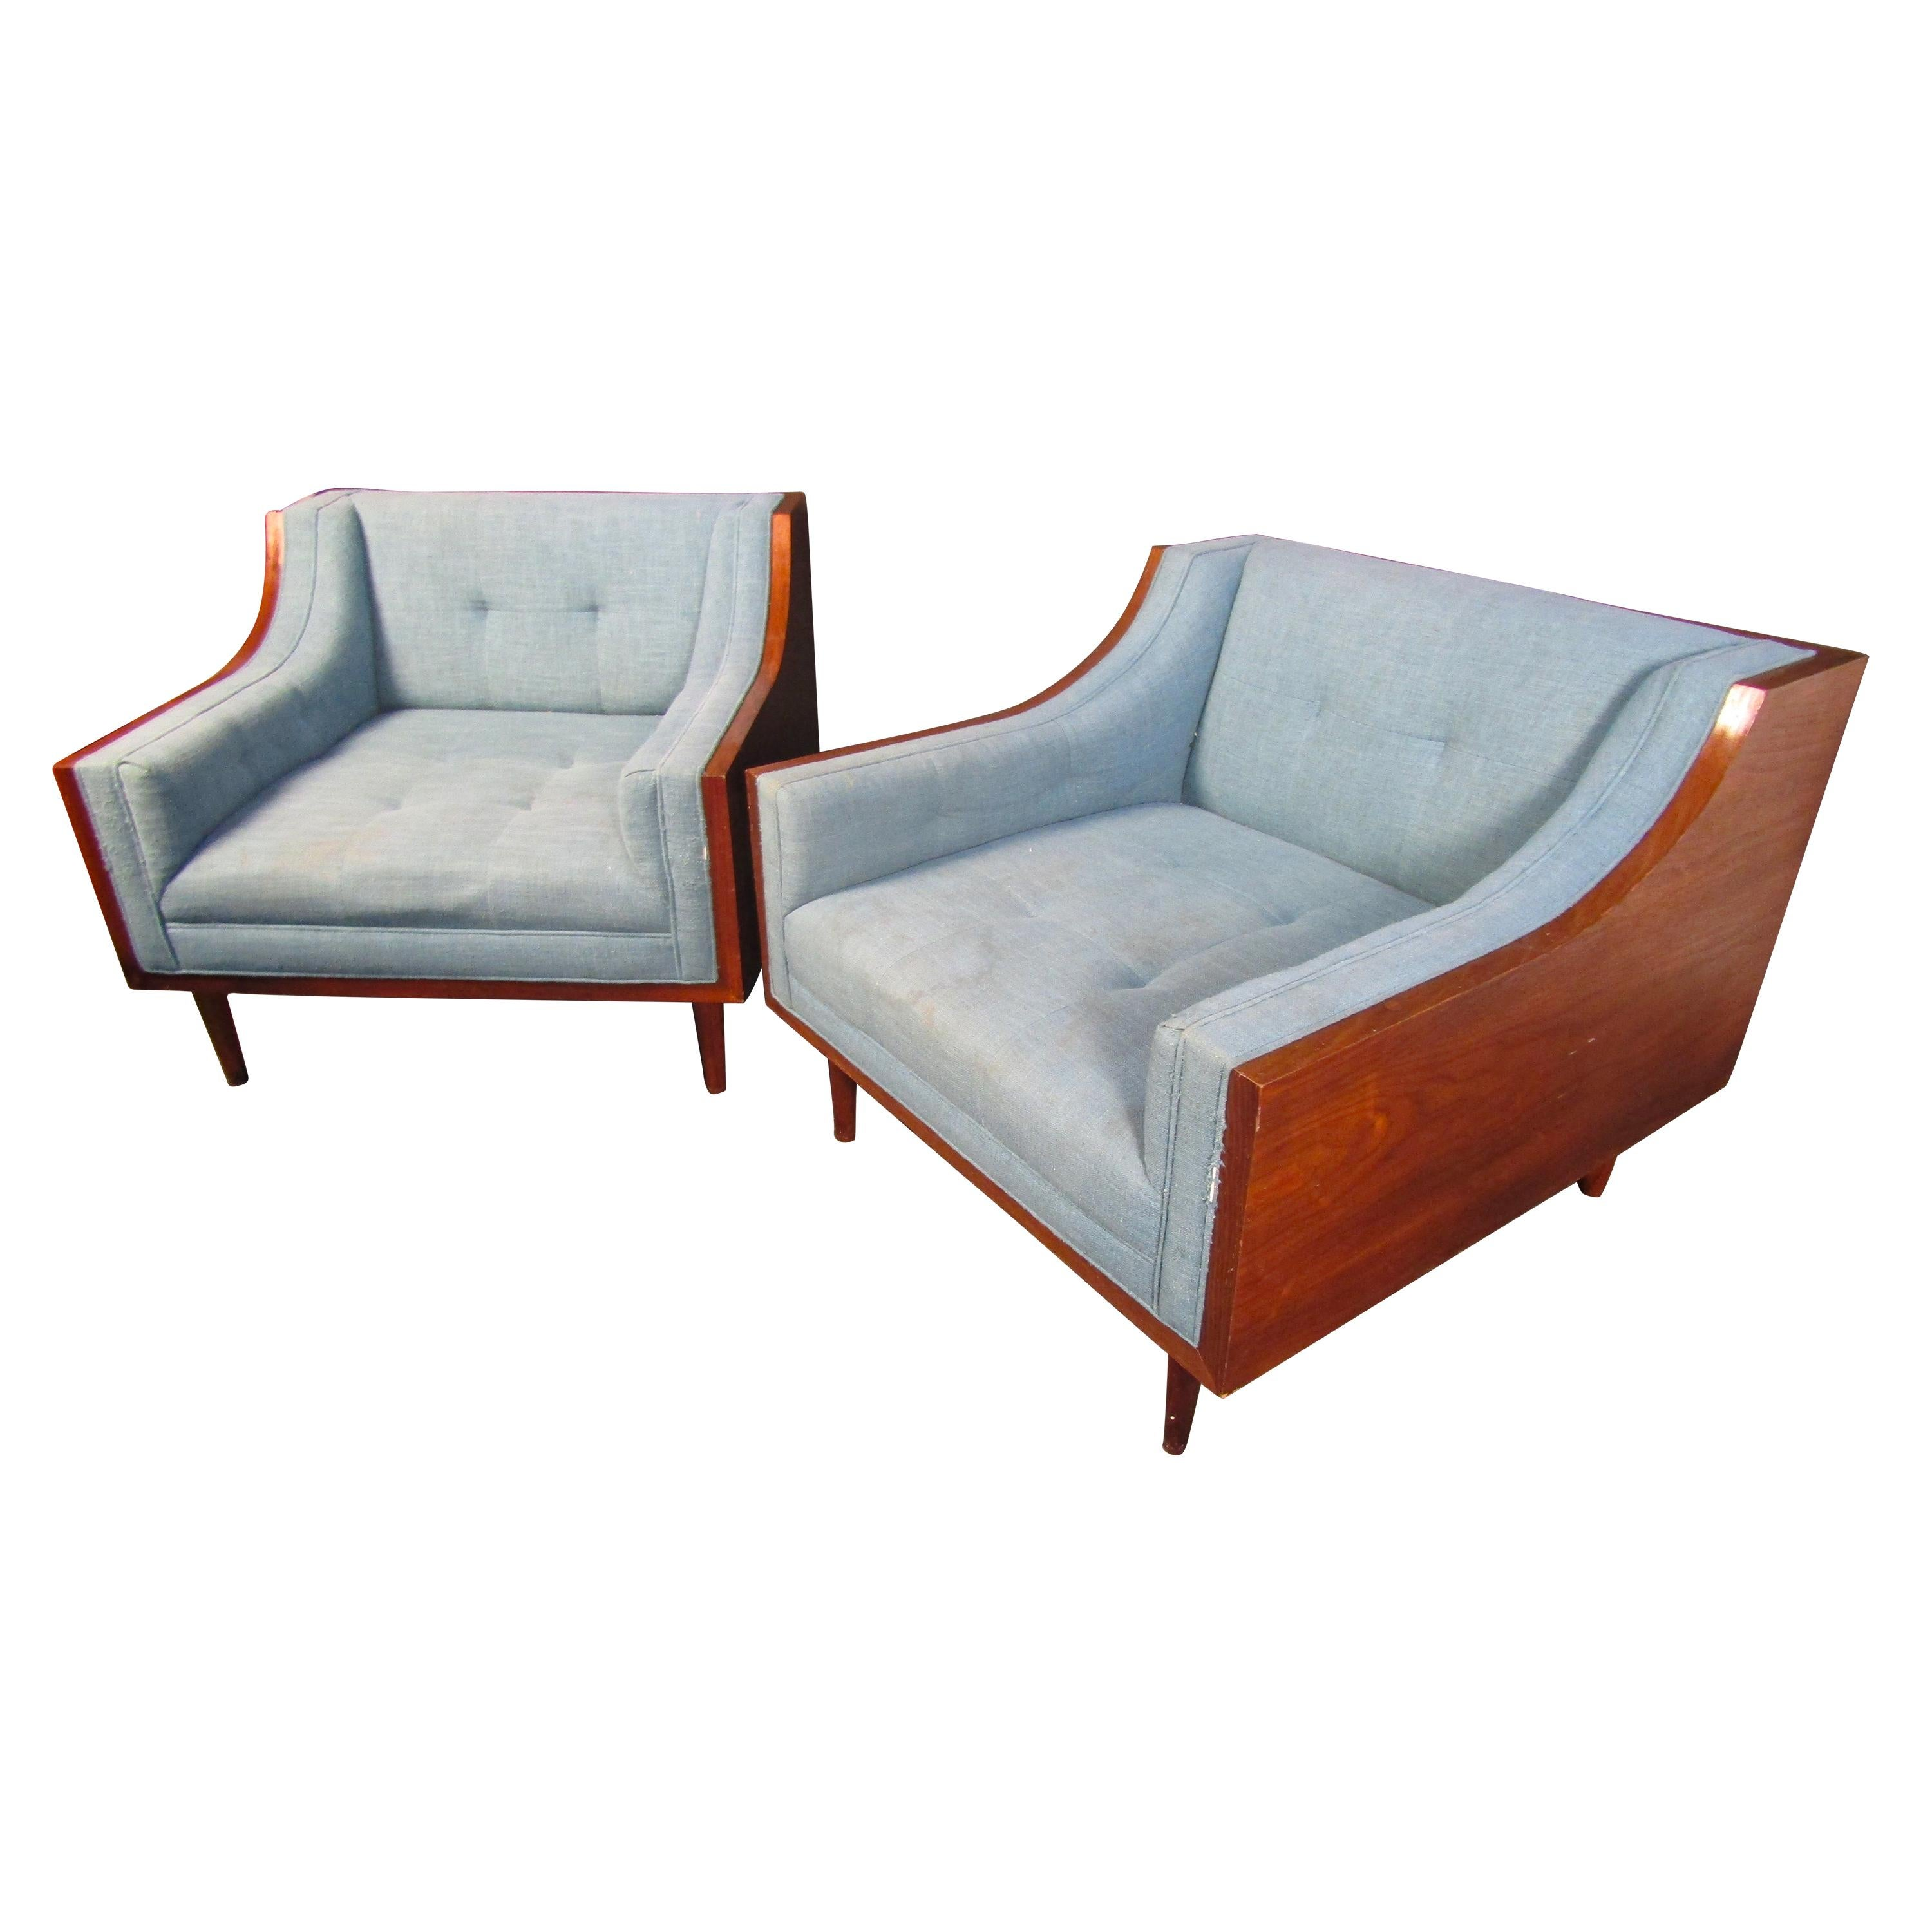 Elegant Mid-Century Modern Wood and Blue Fabric Lounge Chairs